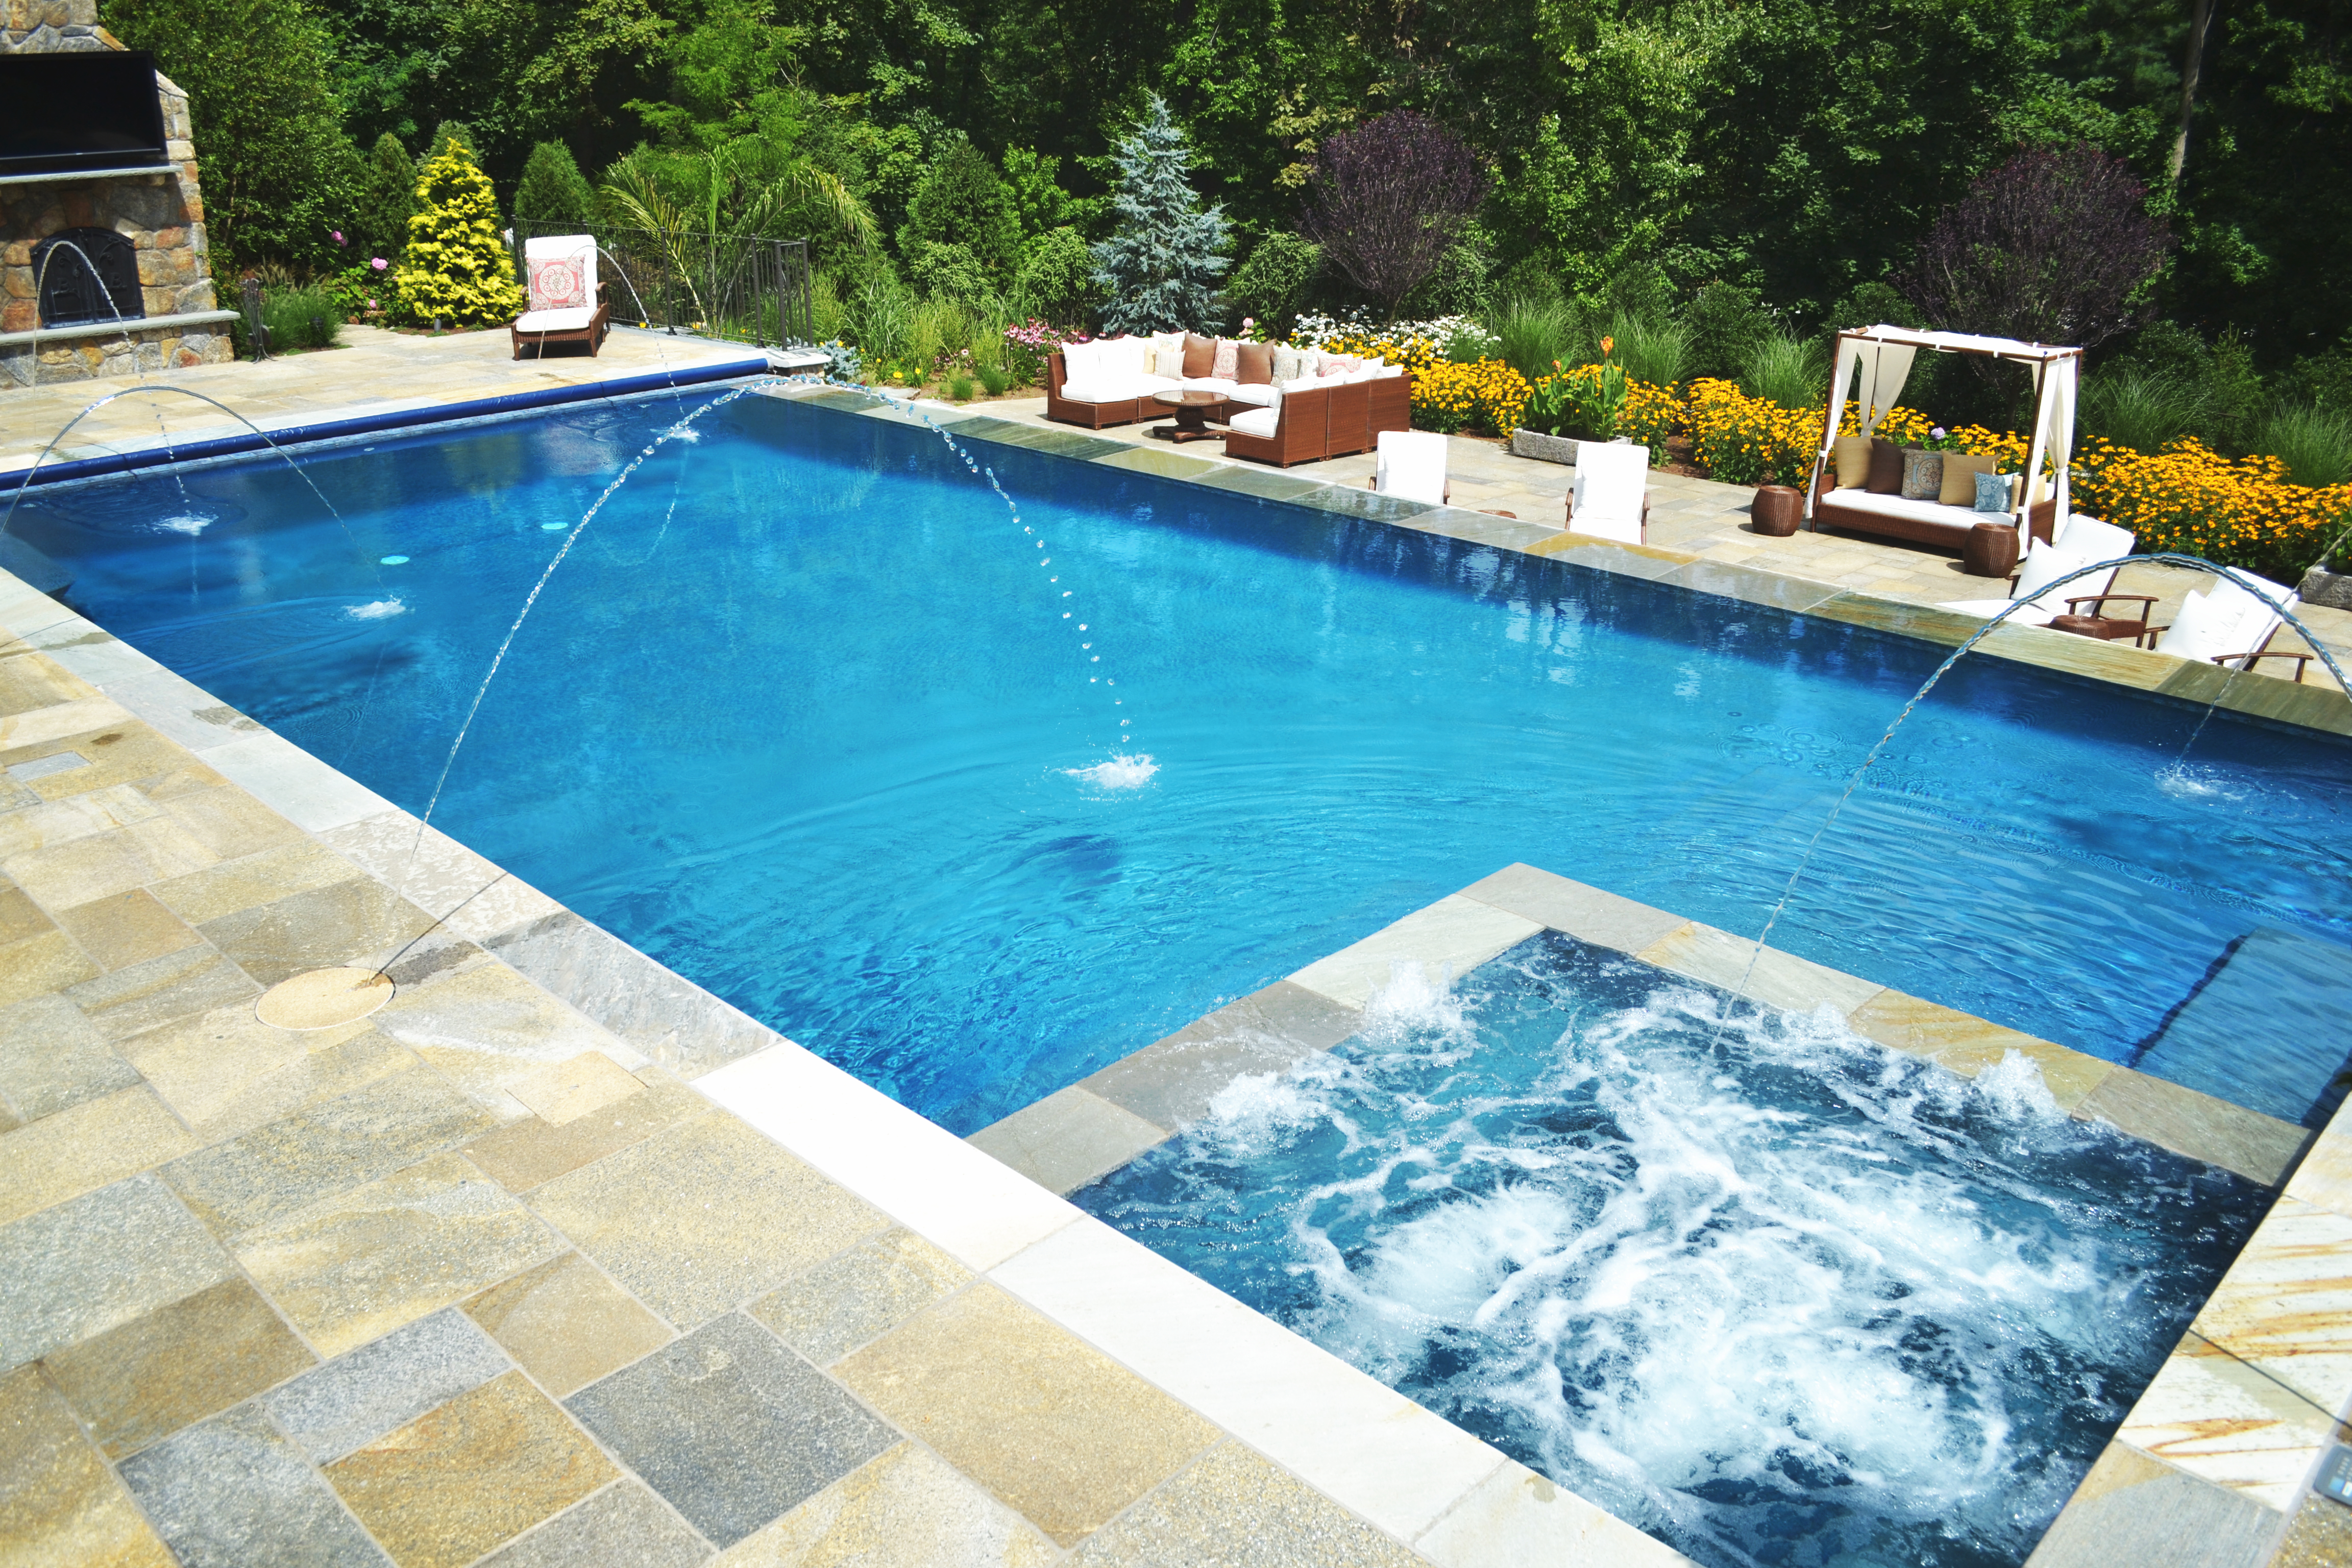 Pool and spa with laminars